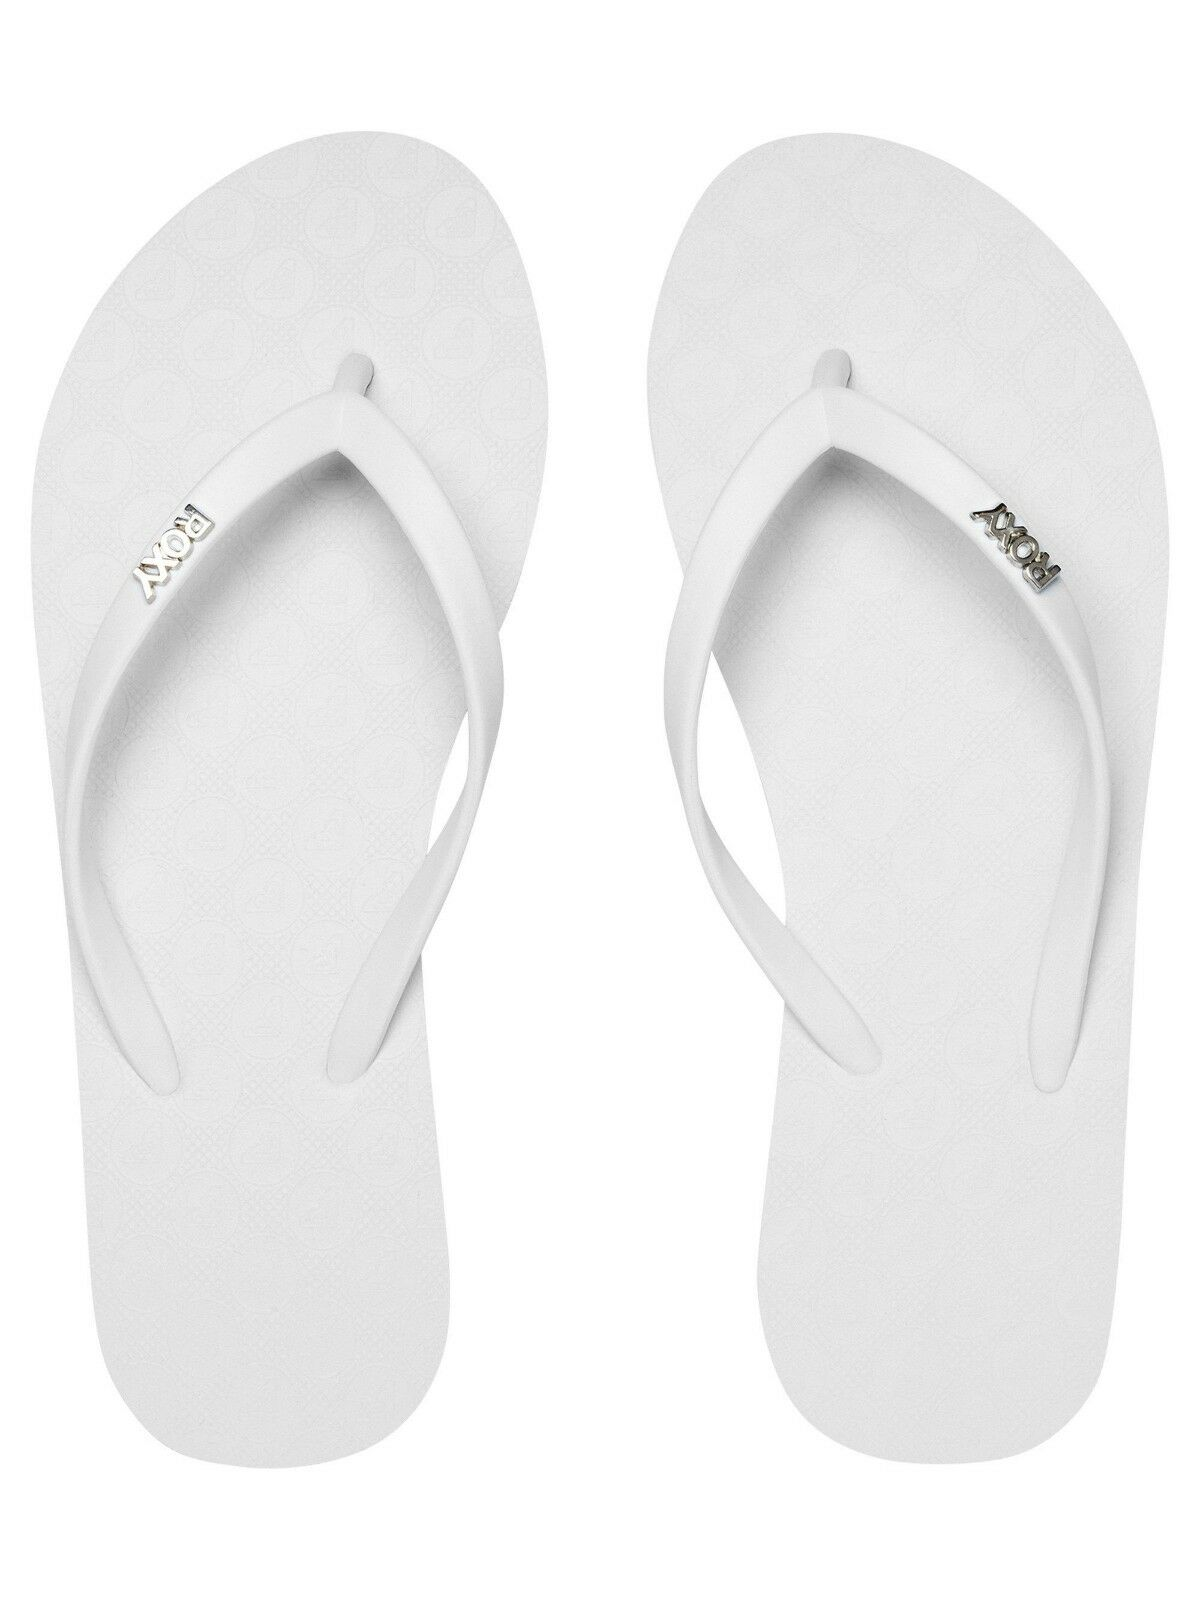 138c76de47b41 ROXY WOMENS FLIP FLOPS.NEW VIVA IV WHITE RUBBER SURF ...